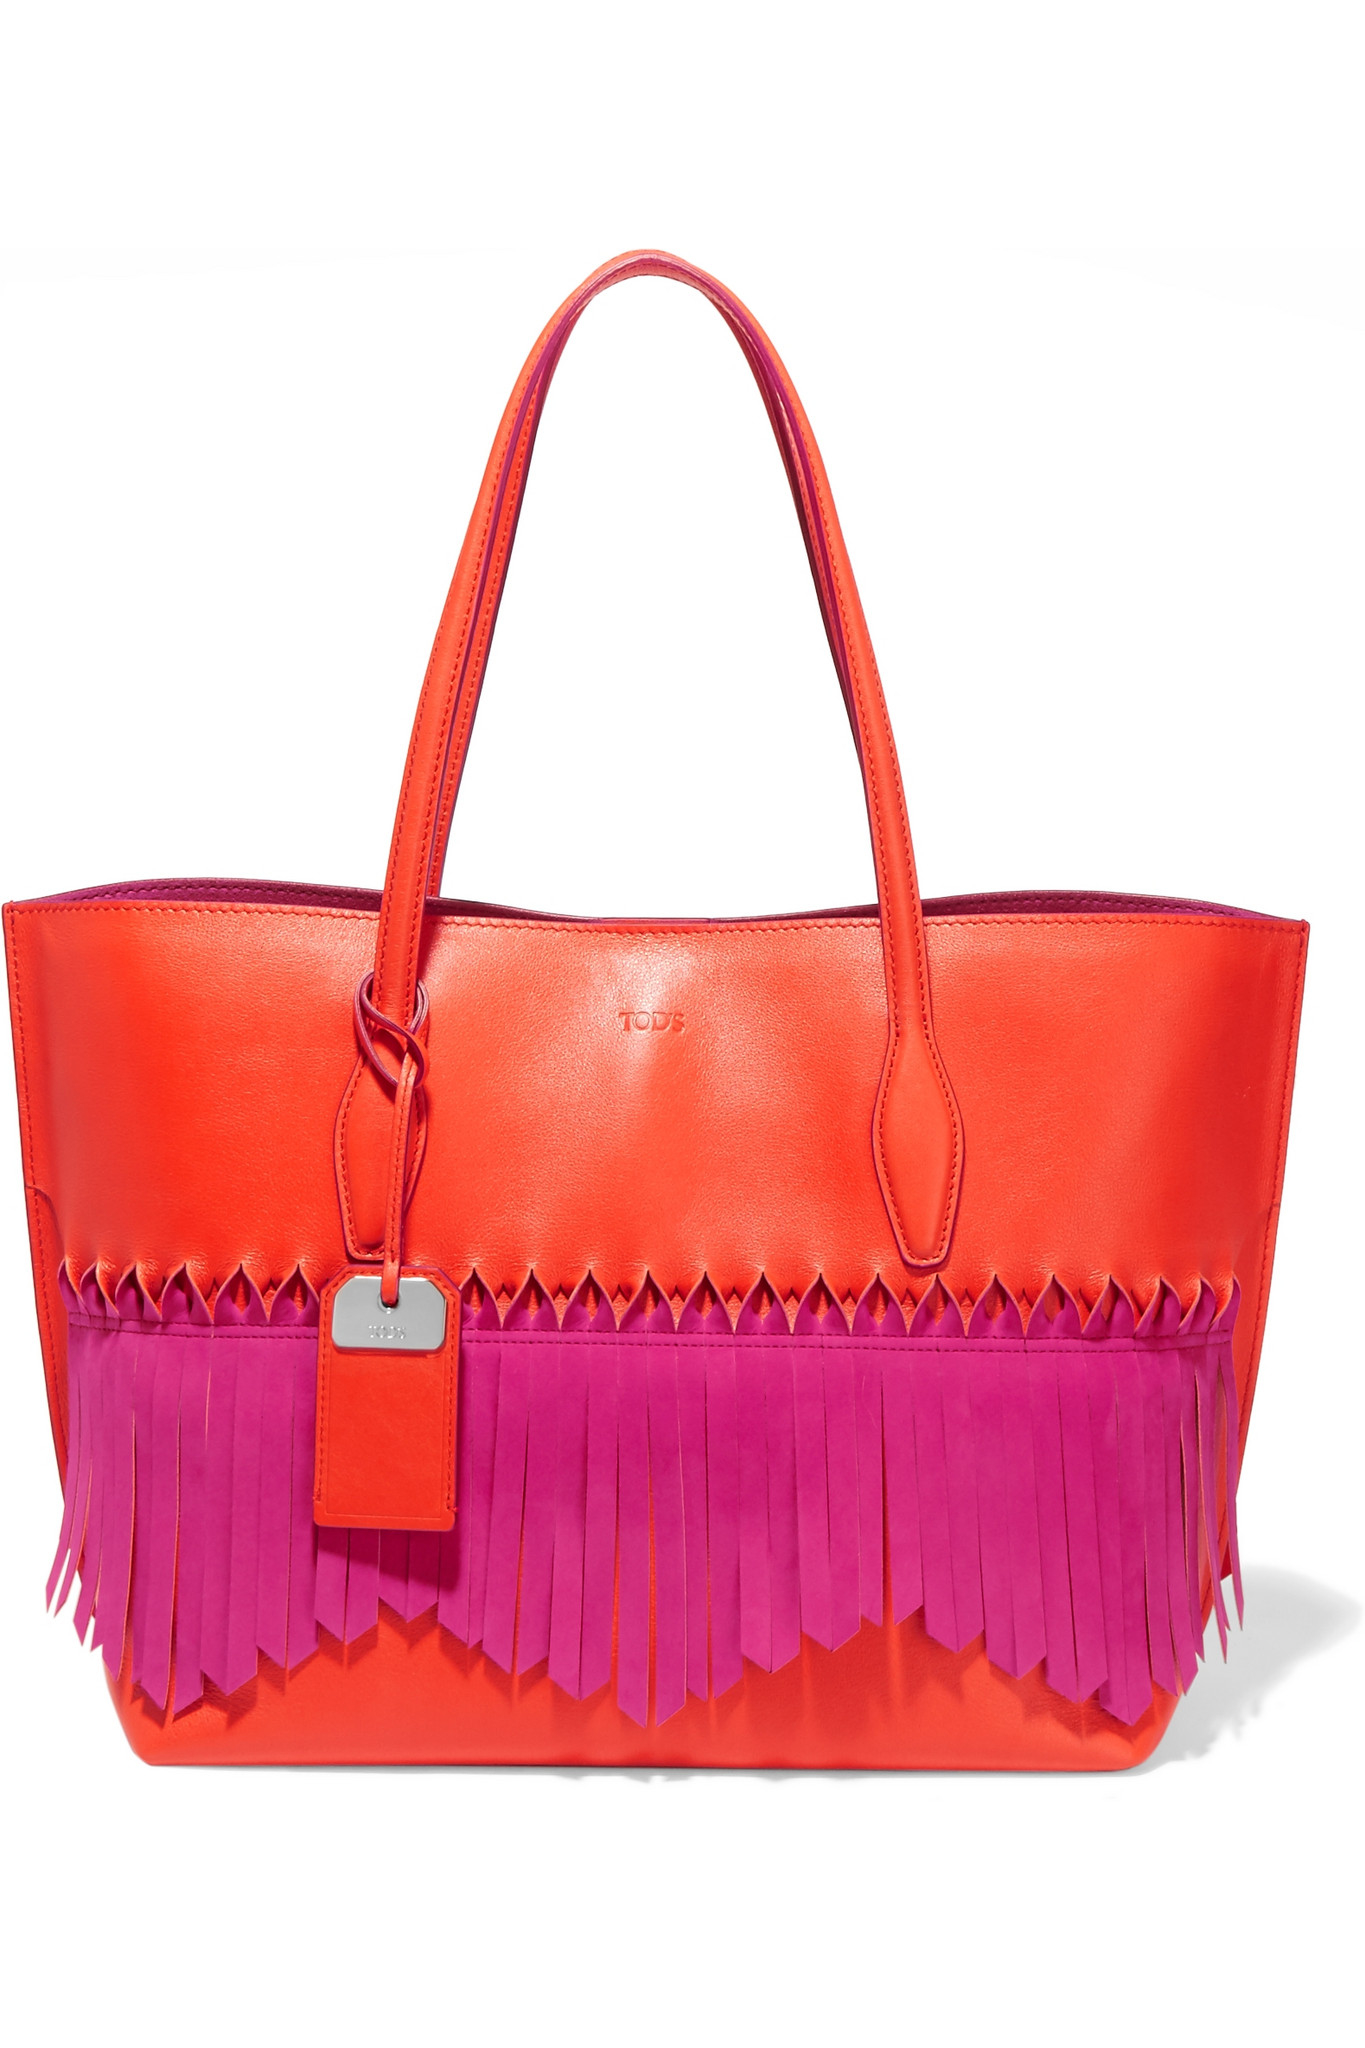 Lyst - Tod'S Joy Origami Fringed Leather Tote in Purple - photo#17